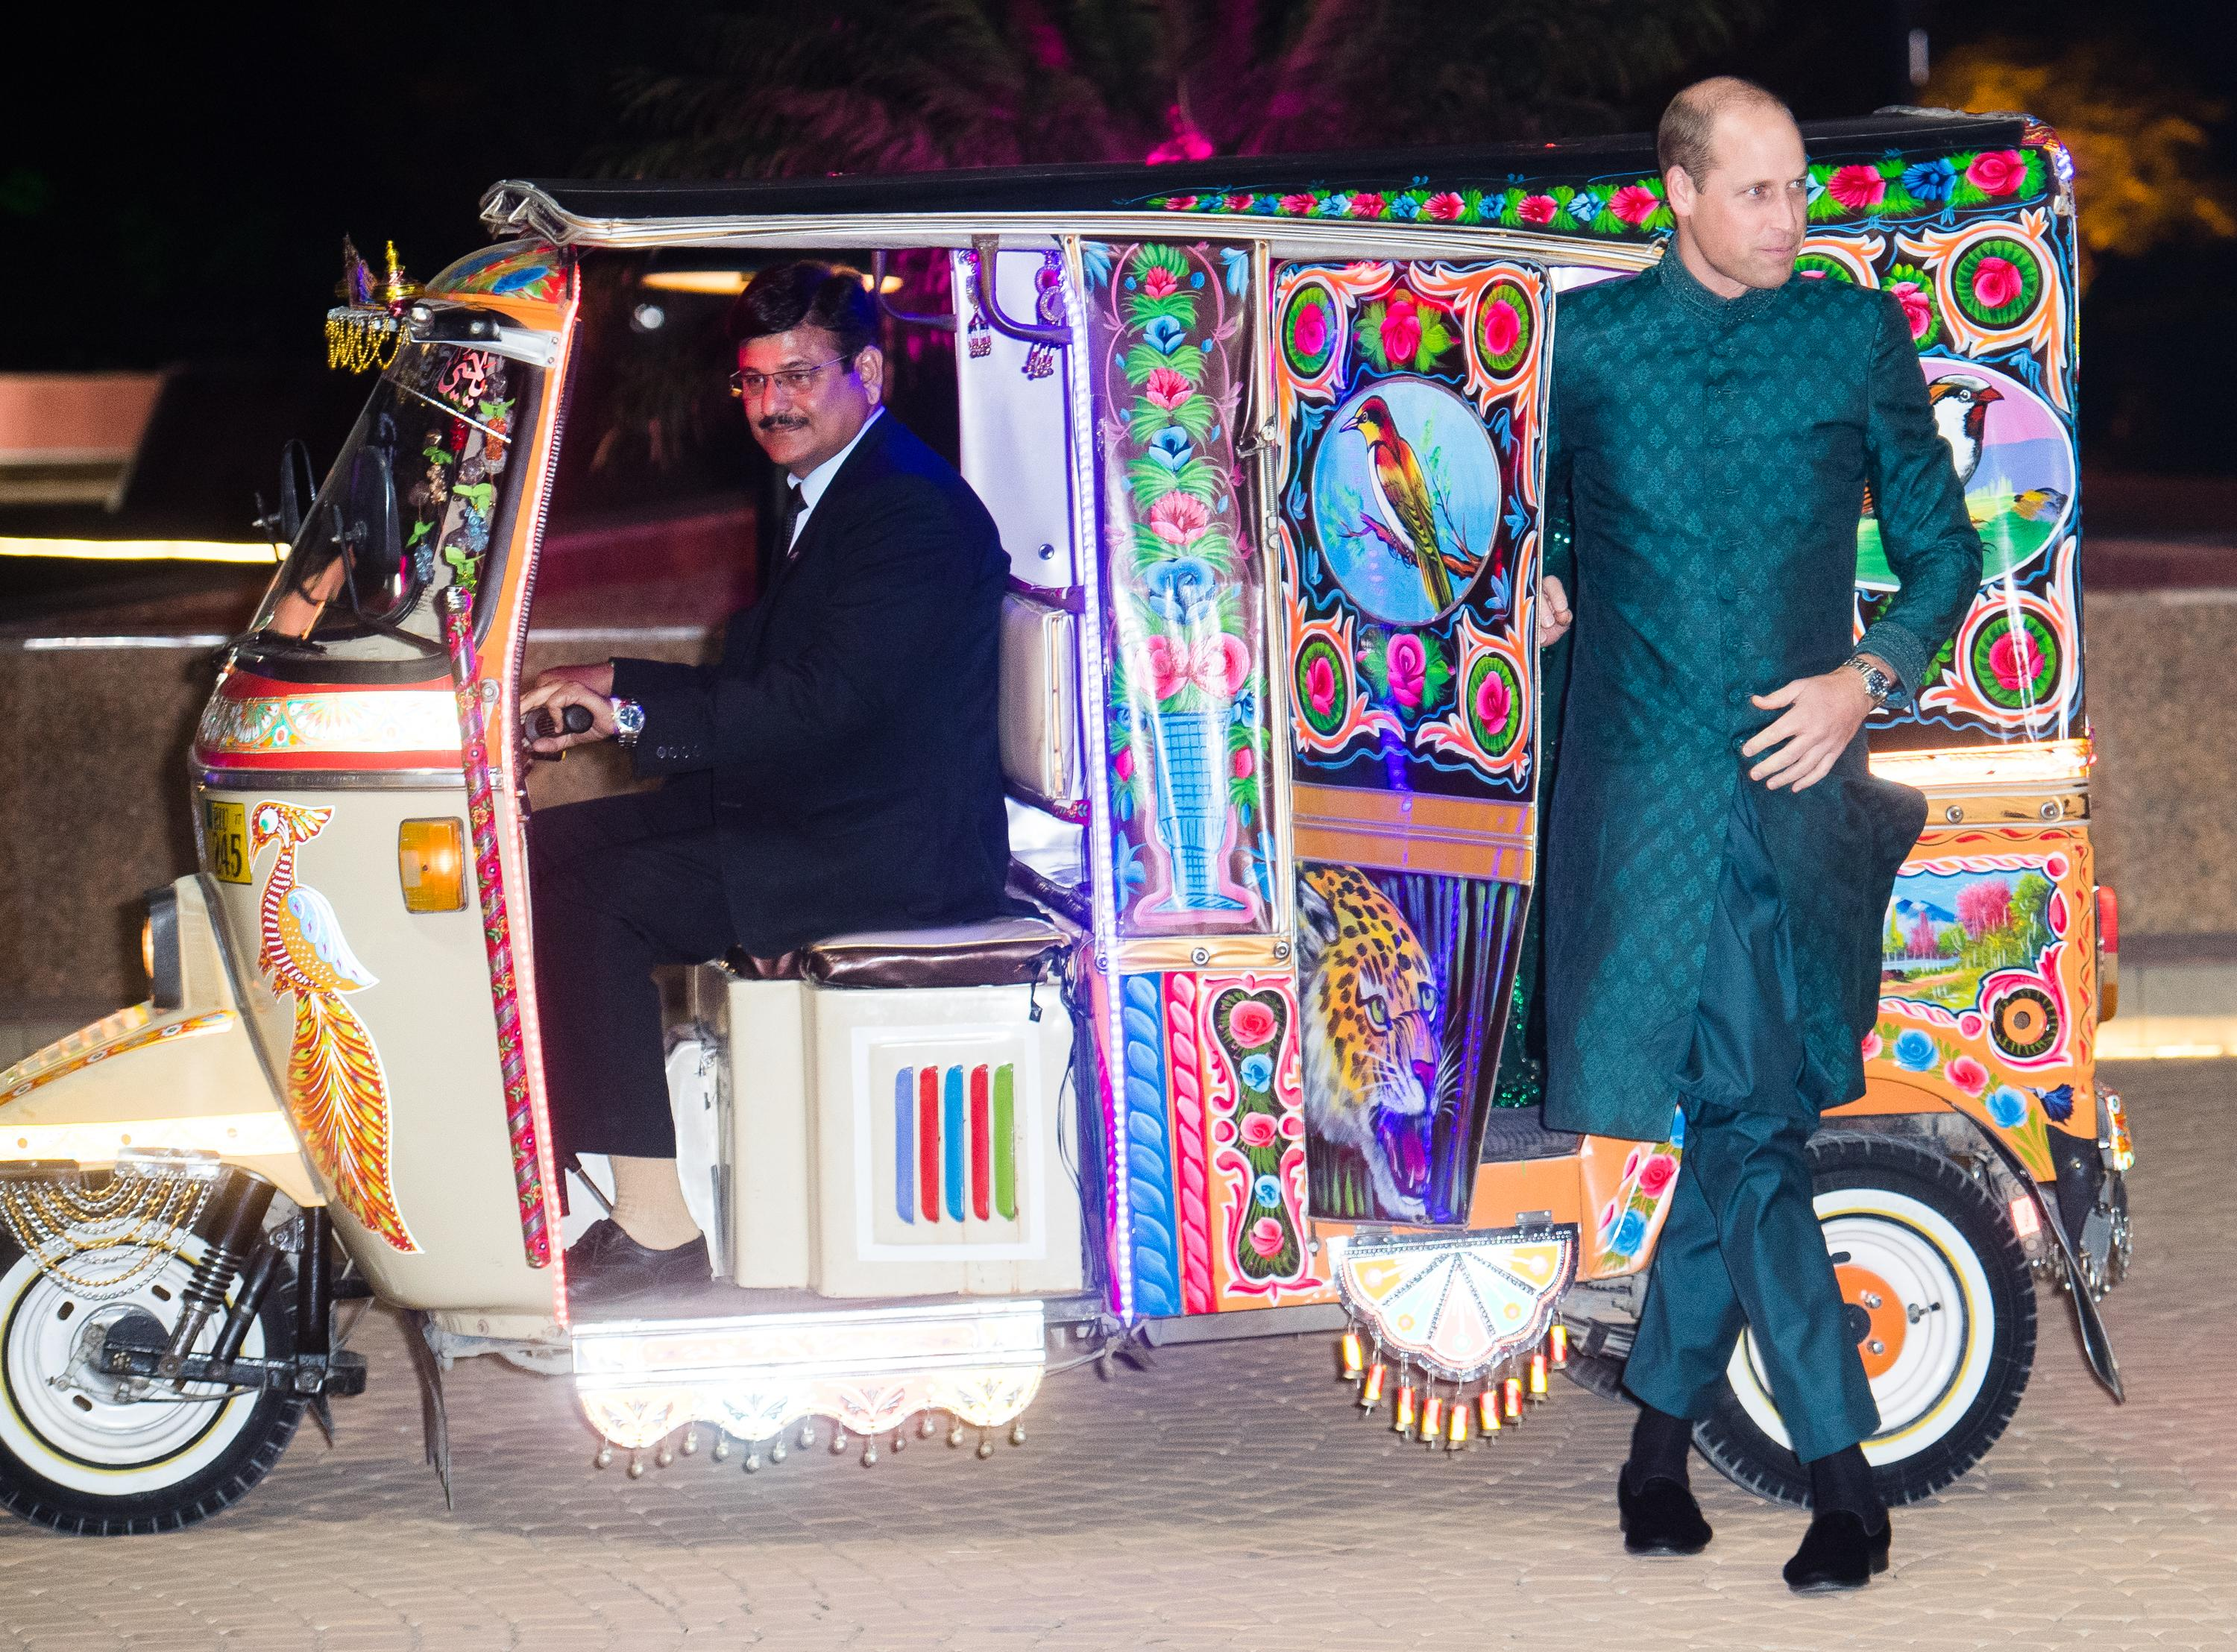 ISLAMABAD, PAKISTAN - OCTOBER 15: Catherine, Duchess of Cambridge and Prince William, Duke of Cambridge arrive by Tuk Tuk as they attend a special reception hosted by the British High Commissioner Thomas Drew, at the Pakistan National Monument, during day two of their royal tour of Pakistan on October 15, 2019 in Islamabad, Pakistan. (Photo by Samir Hussein/WireImage)